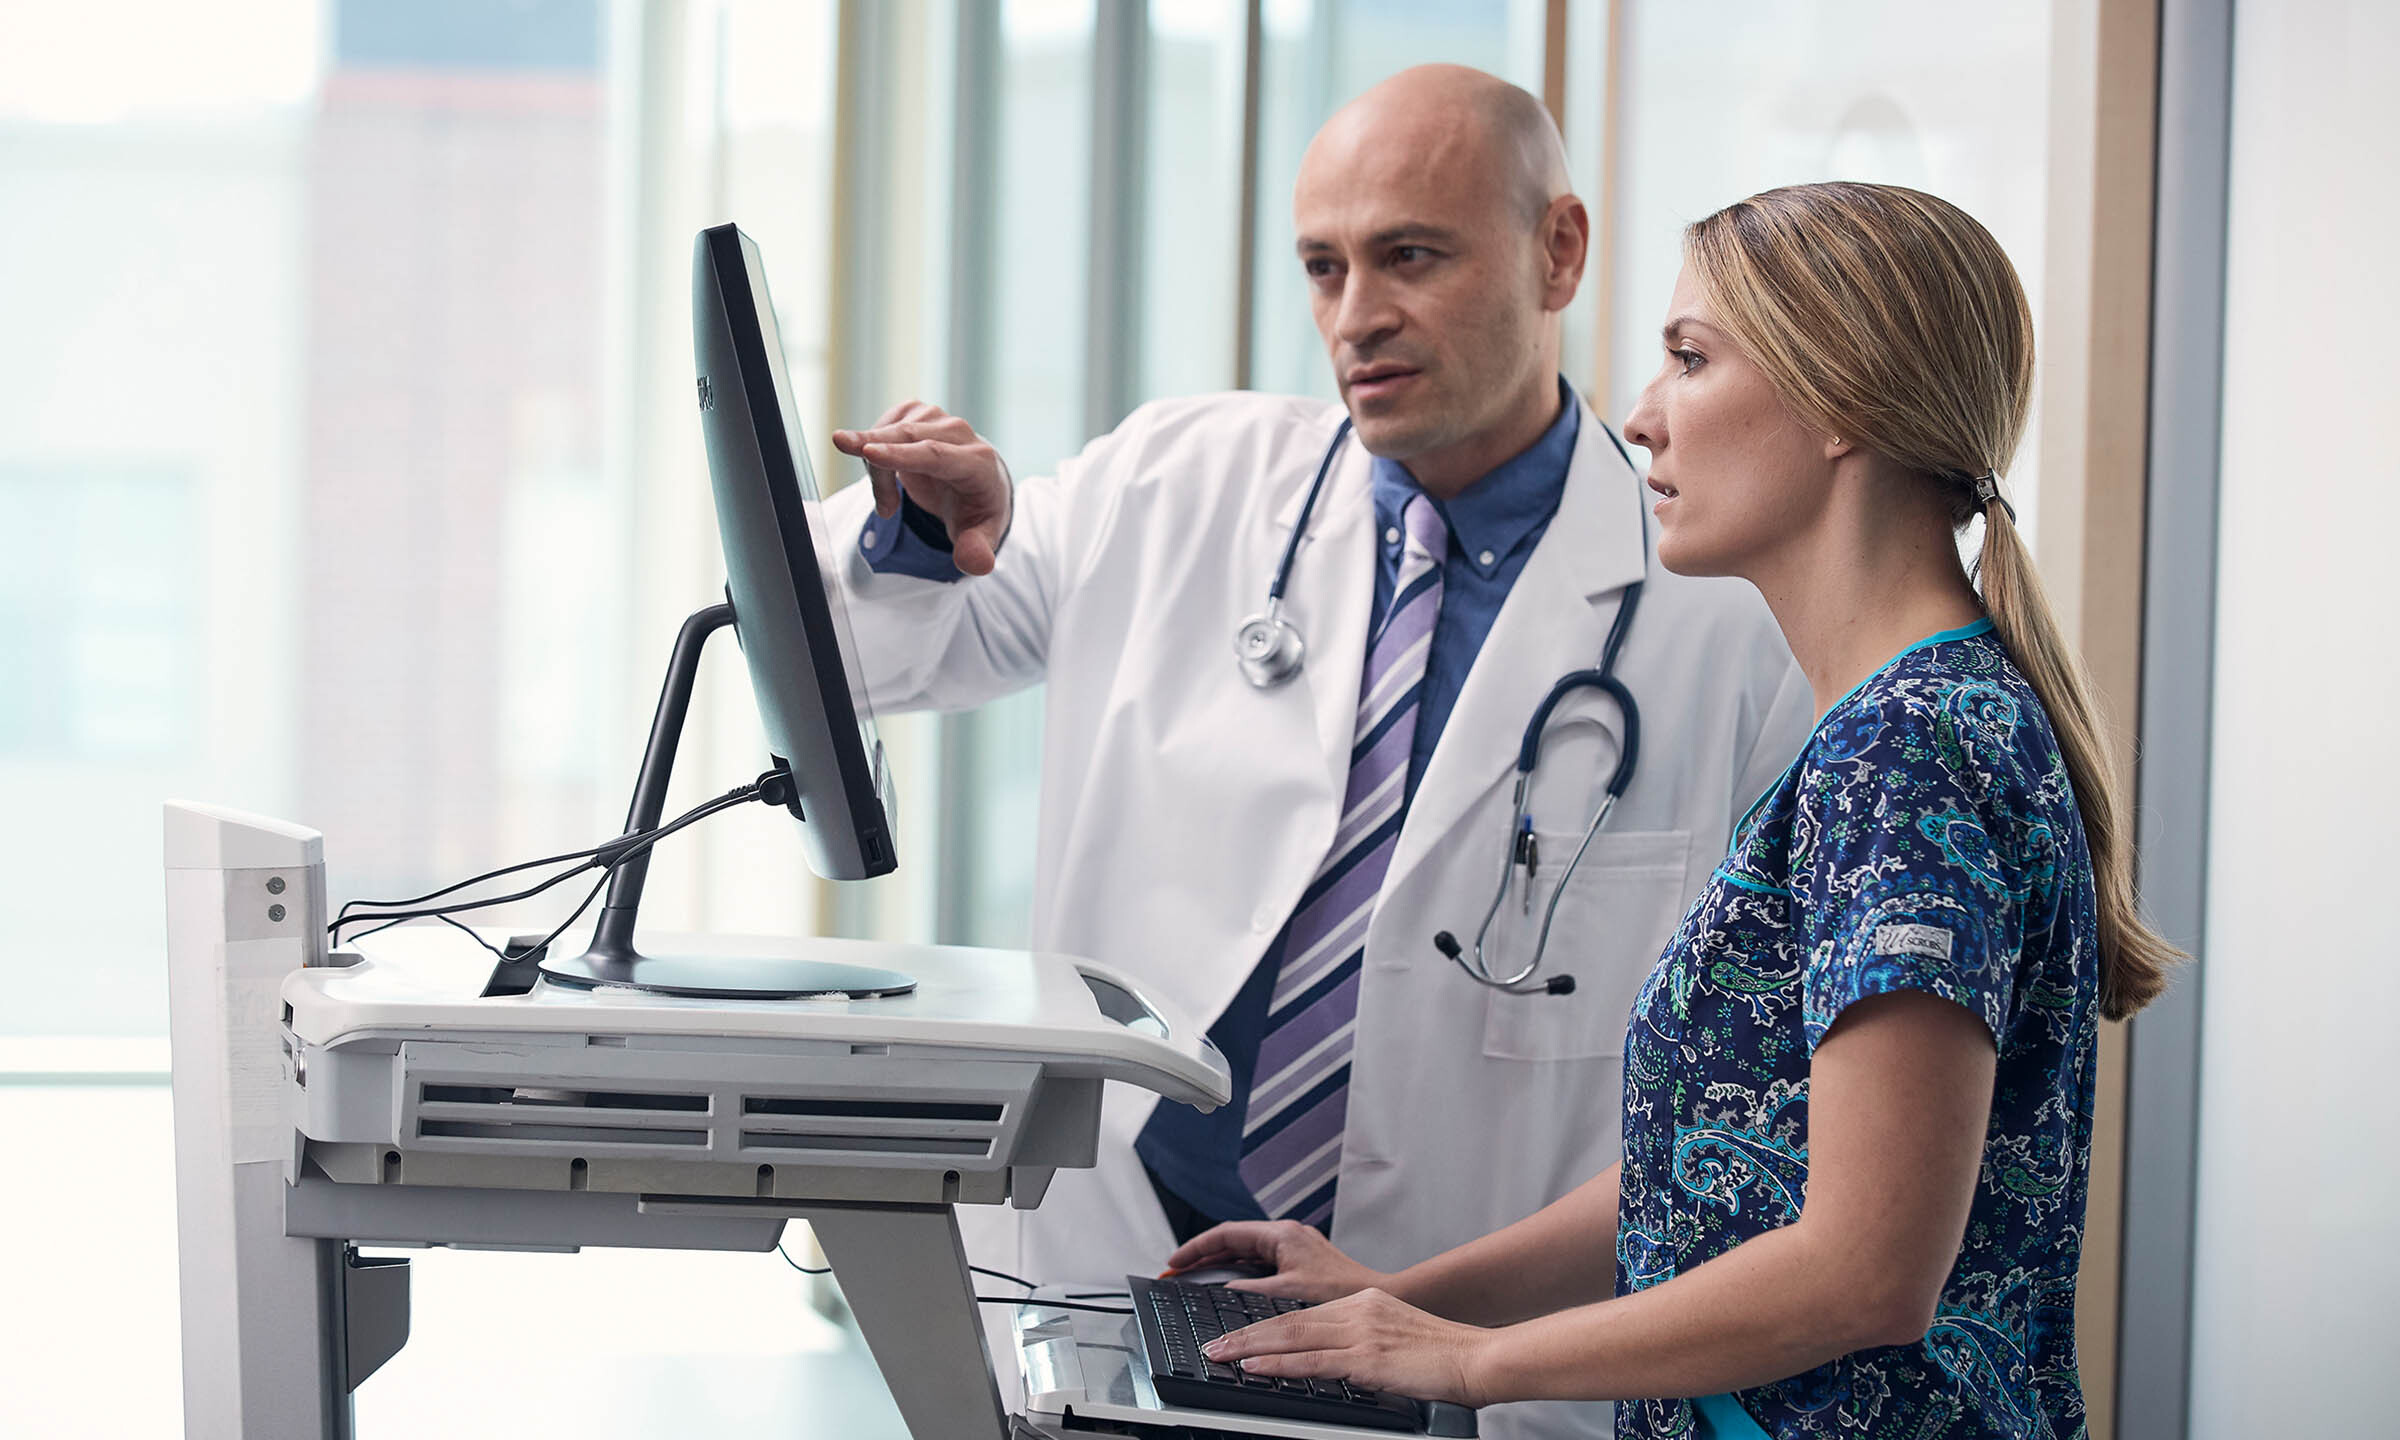 Providers discuss treatment options for a patient in front of a computer.